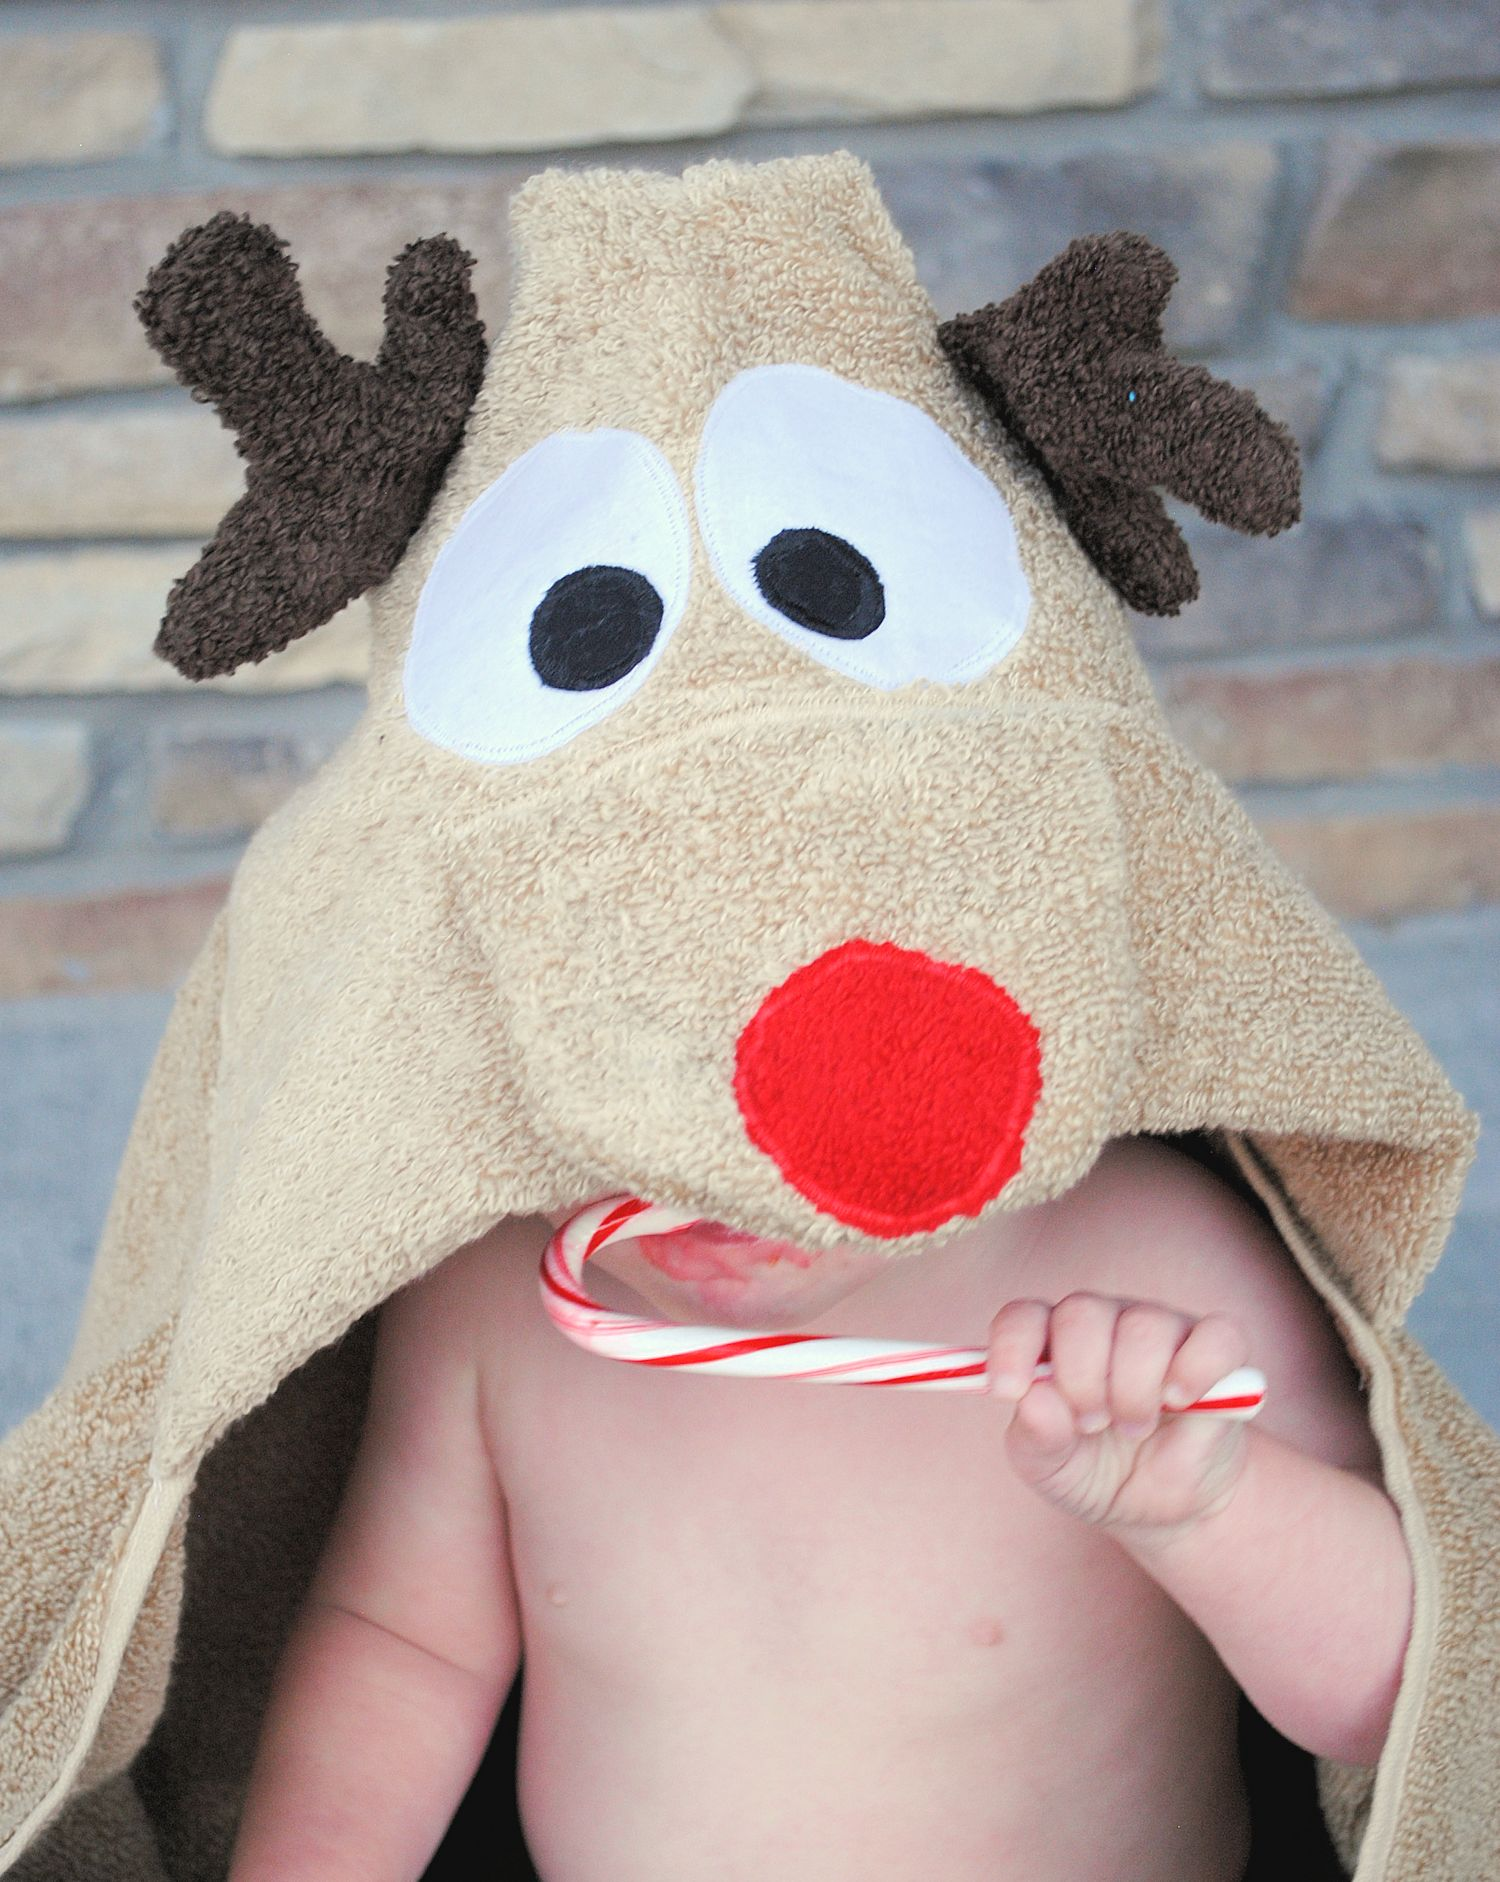 Reindeer Hooded Towel Pattern-This cute towel is a fun way to celebrate the holidays with the little ones. Makes a great Christmas sewing project. #sewing #christmas